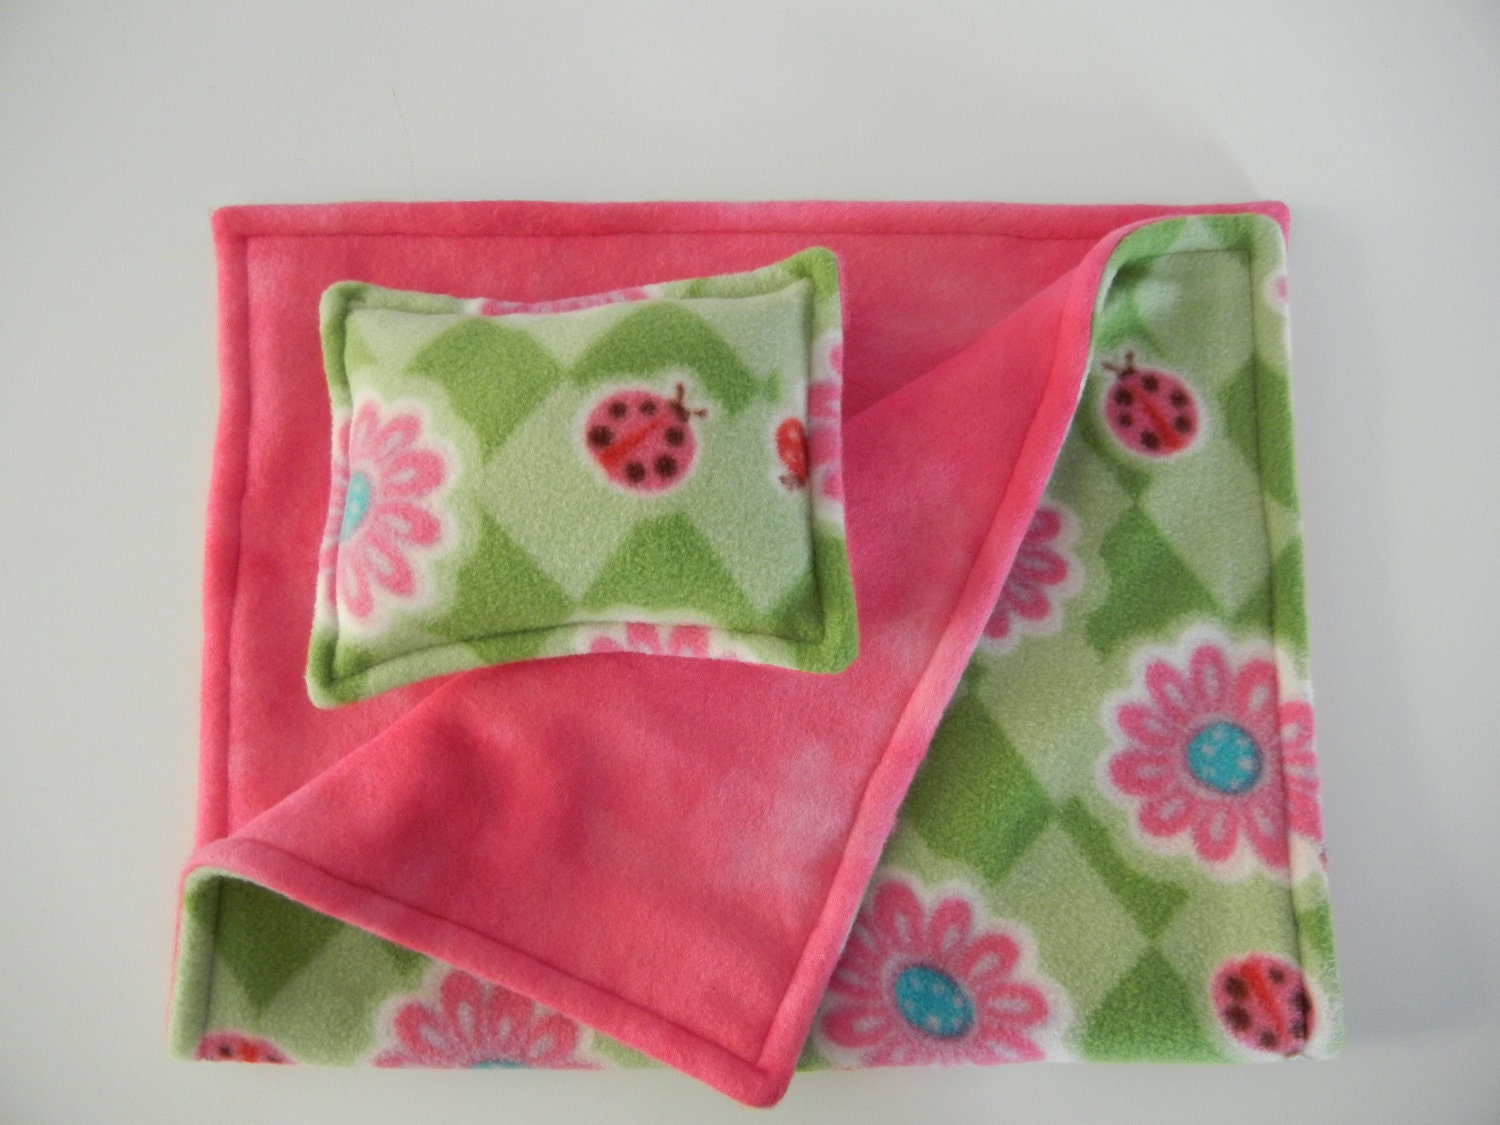 Pink Throw Blankets: Add a touch of warmth to your bed with a craftily placed throw blanket.